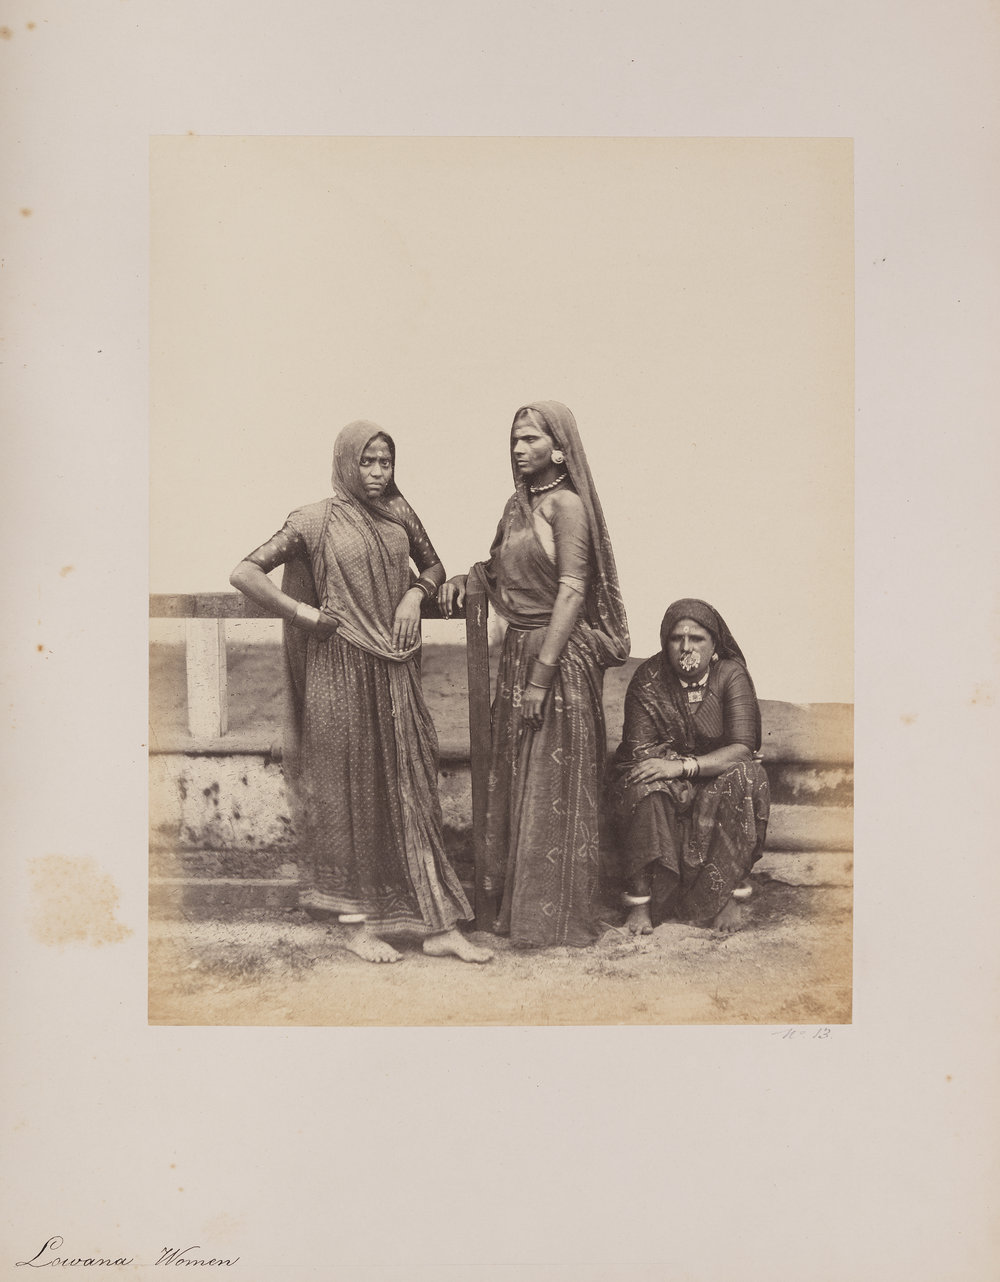 """Lowana Women"" by William Johnson from  Photographs of Western India. Volume I. Costumes and Characters  (1855-1862). Image from  Wikimedia Commons  courtesy Southern Methodist University, Central University Libraries, DeGolyer Library,"